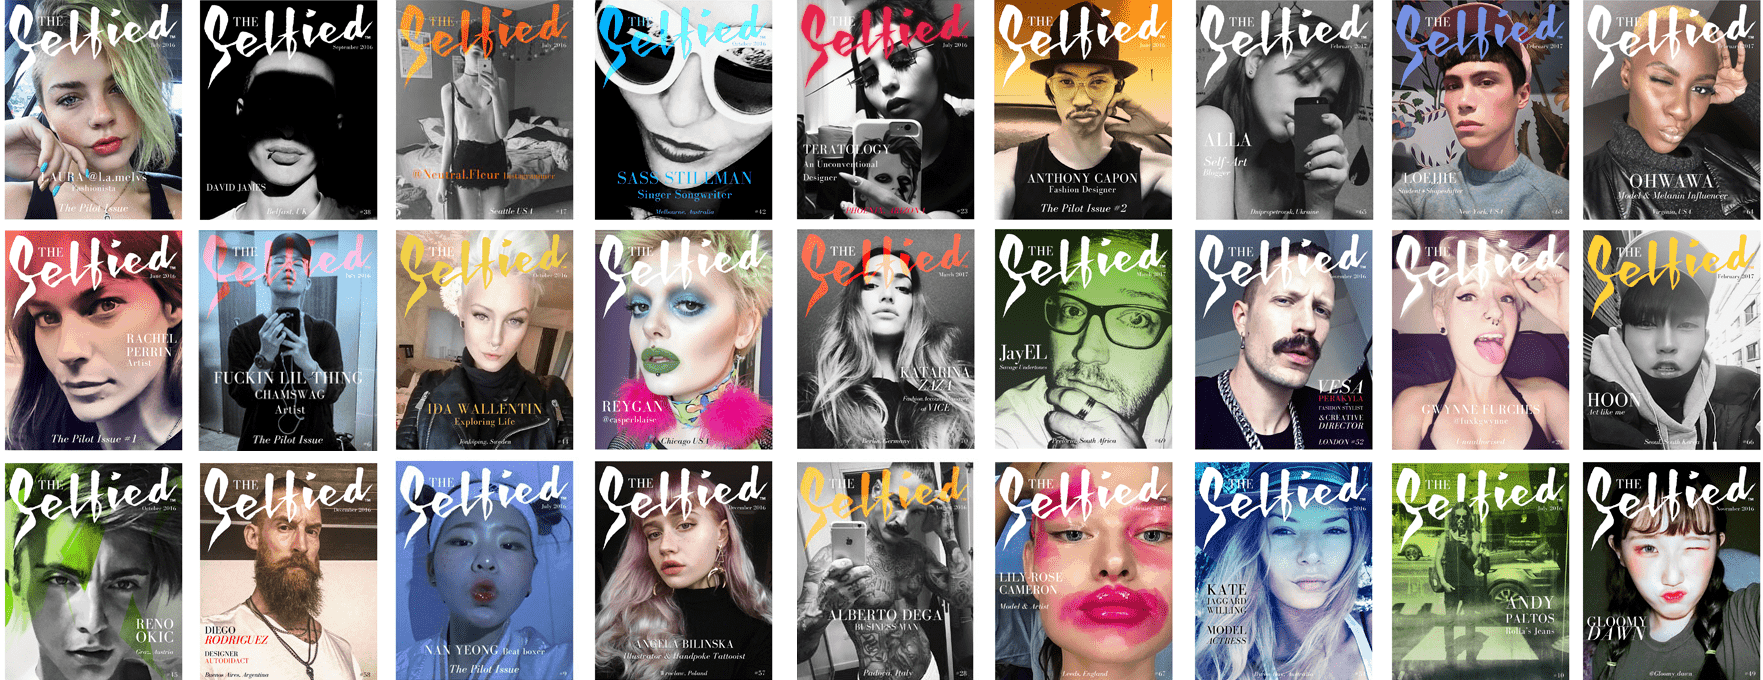 A grid of most of The Selfied selfie magazine covers